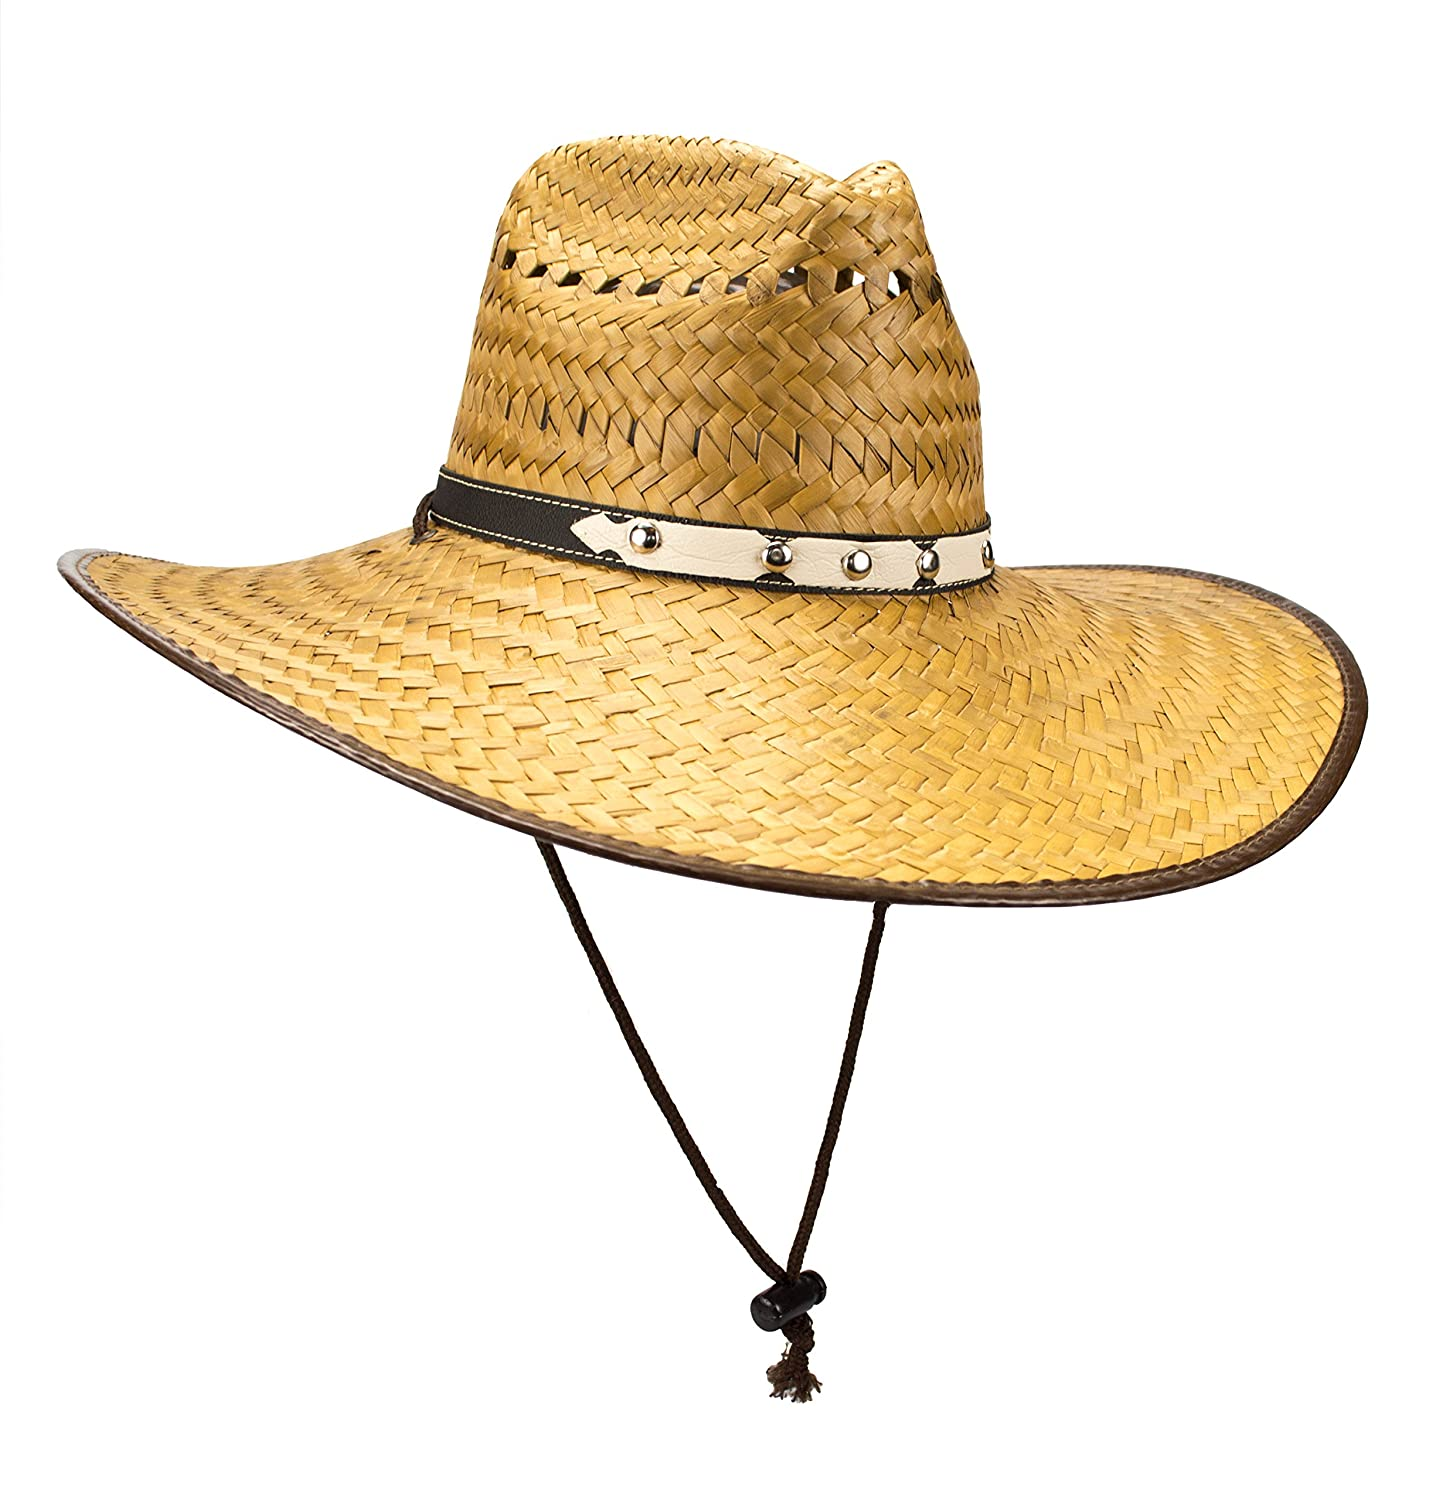 Rising Phoenix Super Wide Brim Cowboy Lifeguard Palm Leaf Straw Hat, Flex Fit, Chin Strap, L Chin Strap (Cowboy)